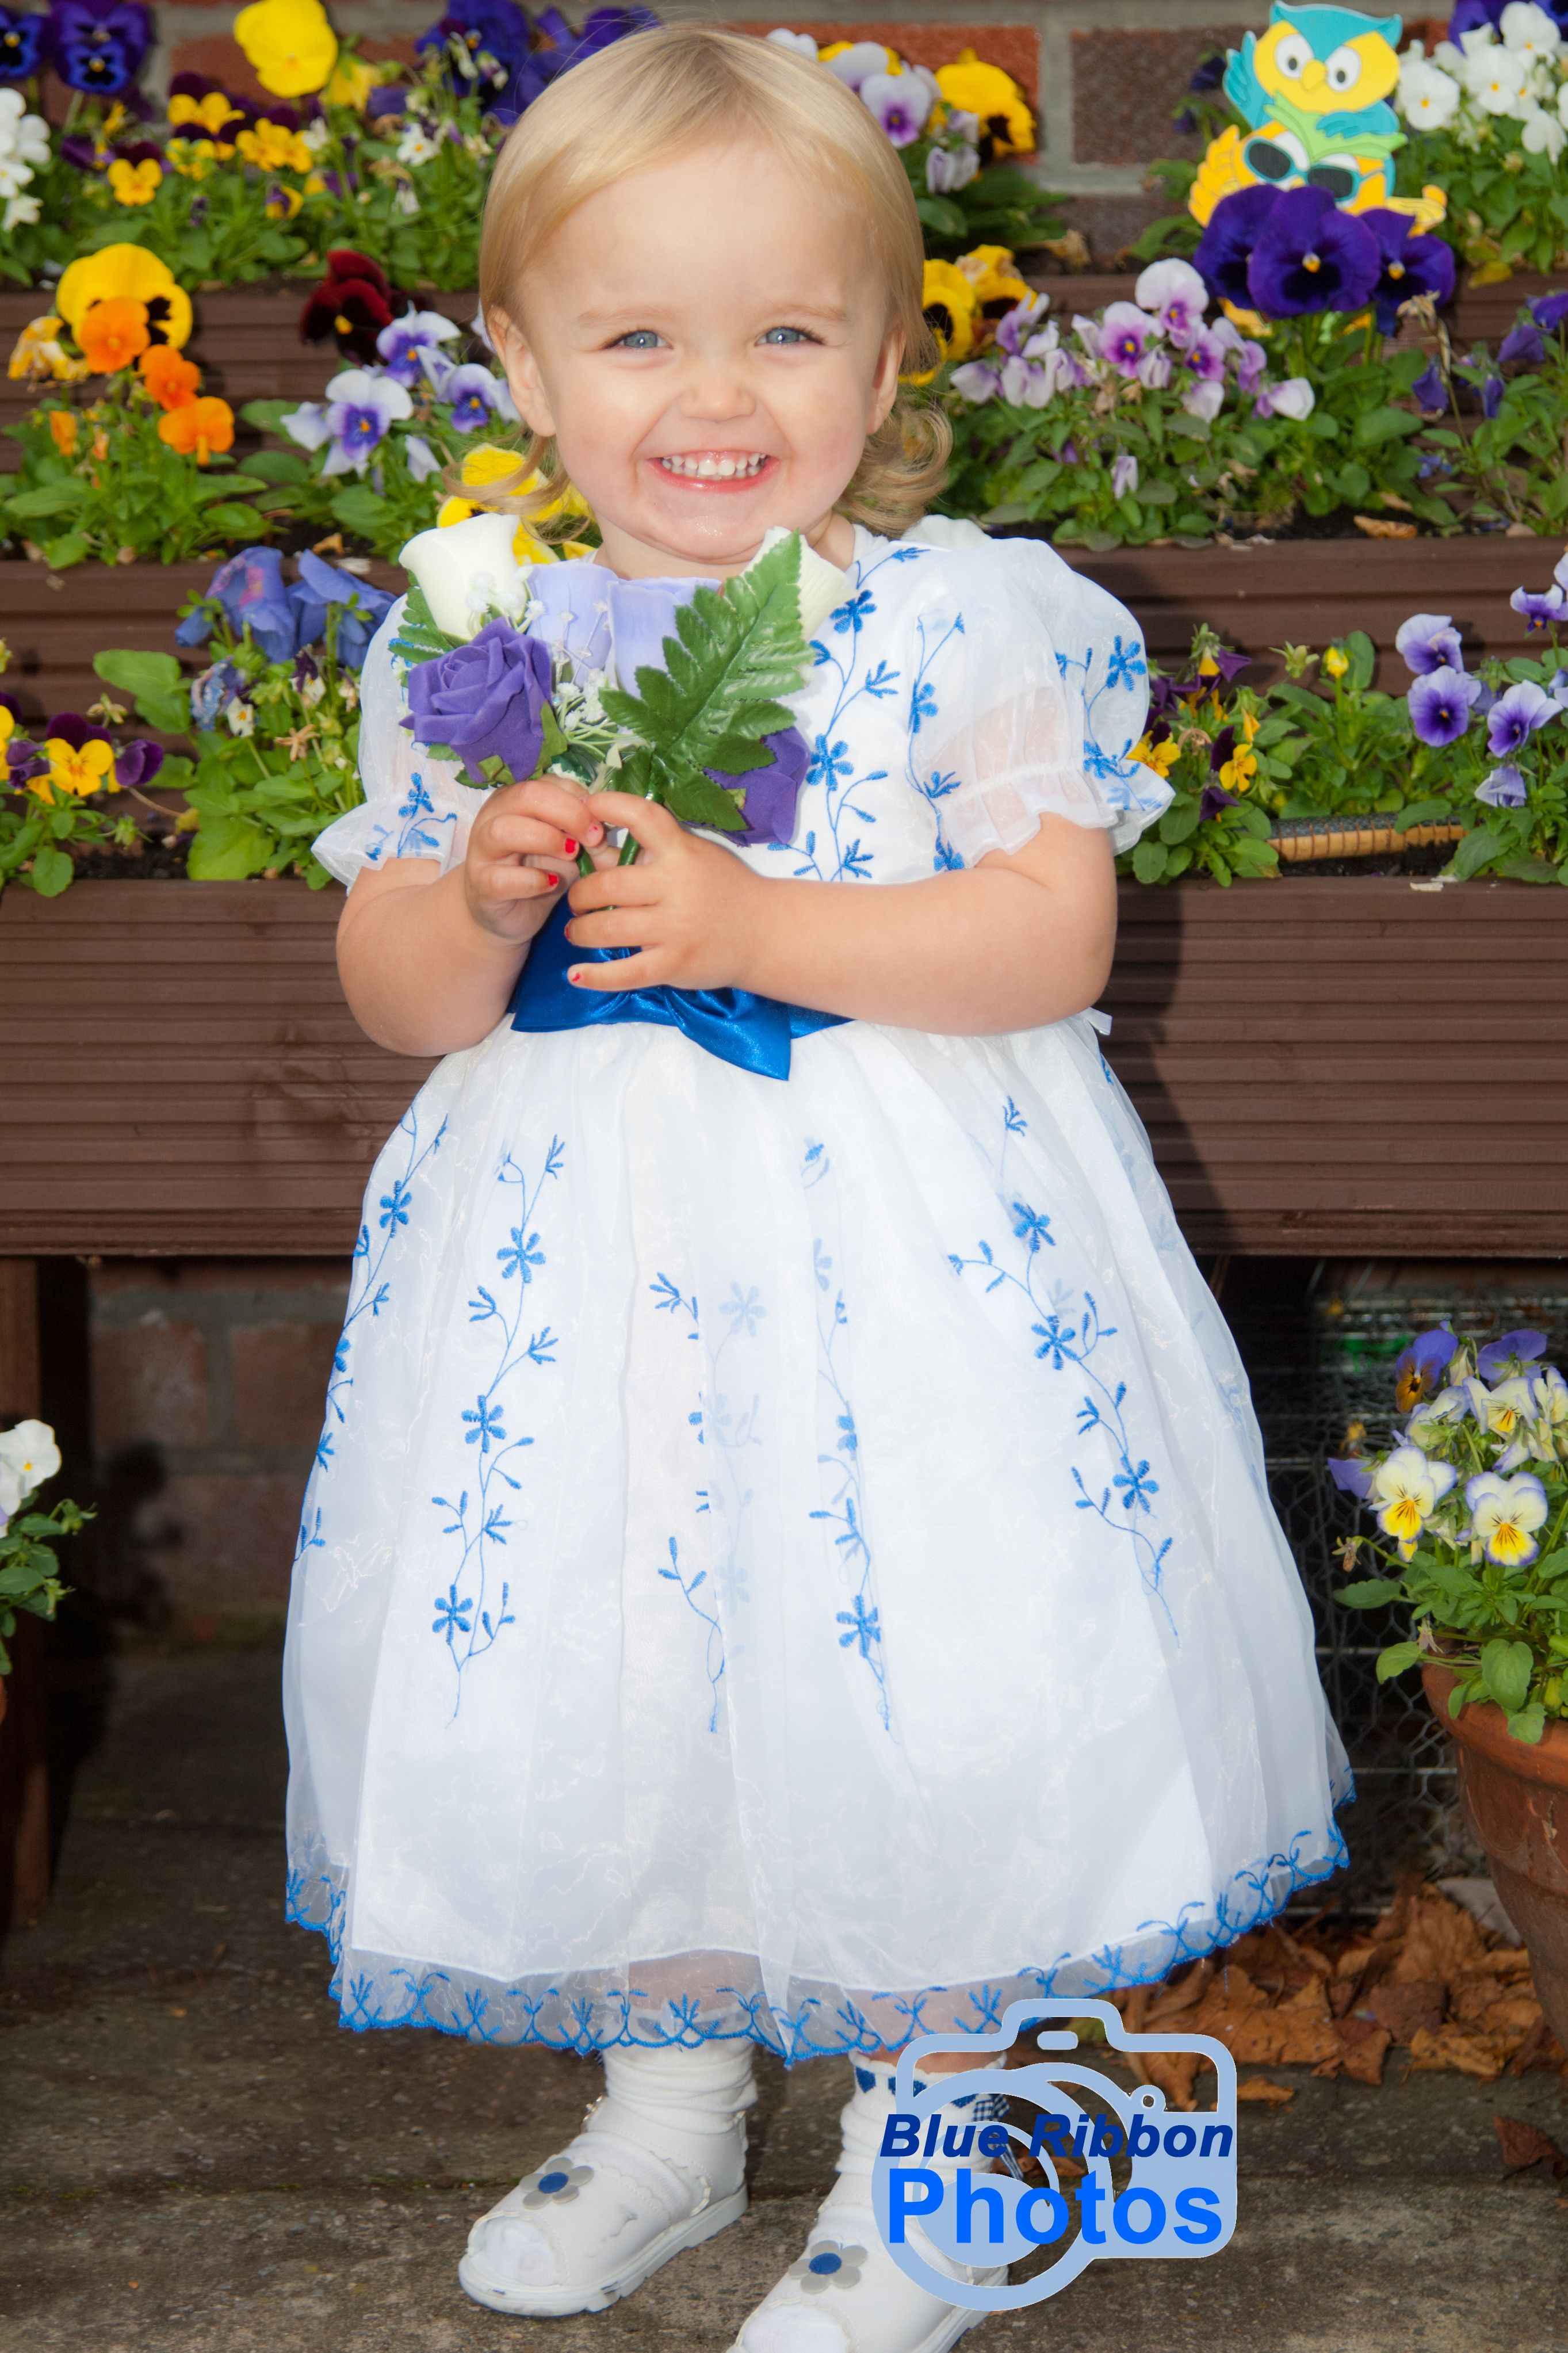 Young flower girl poses with the flowers blue ribbon photos